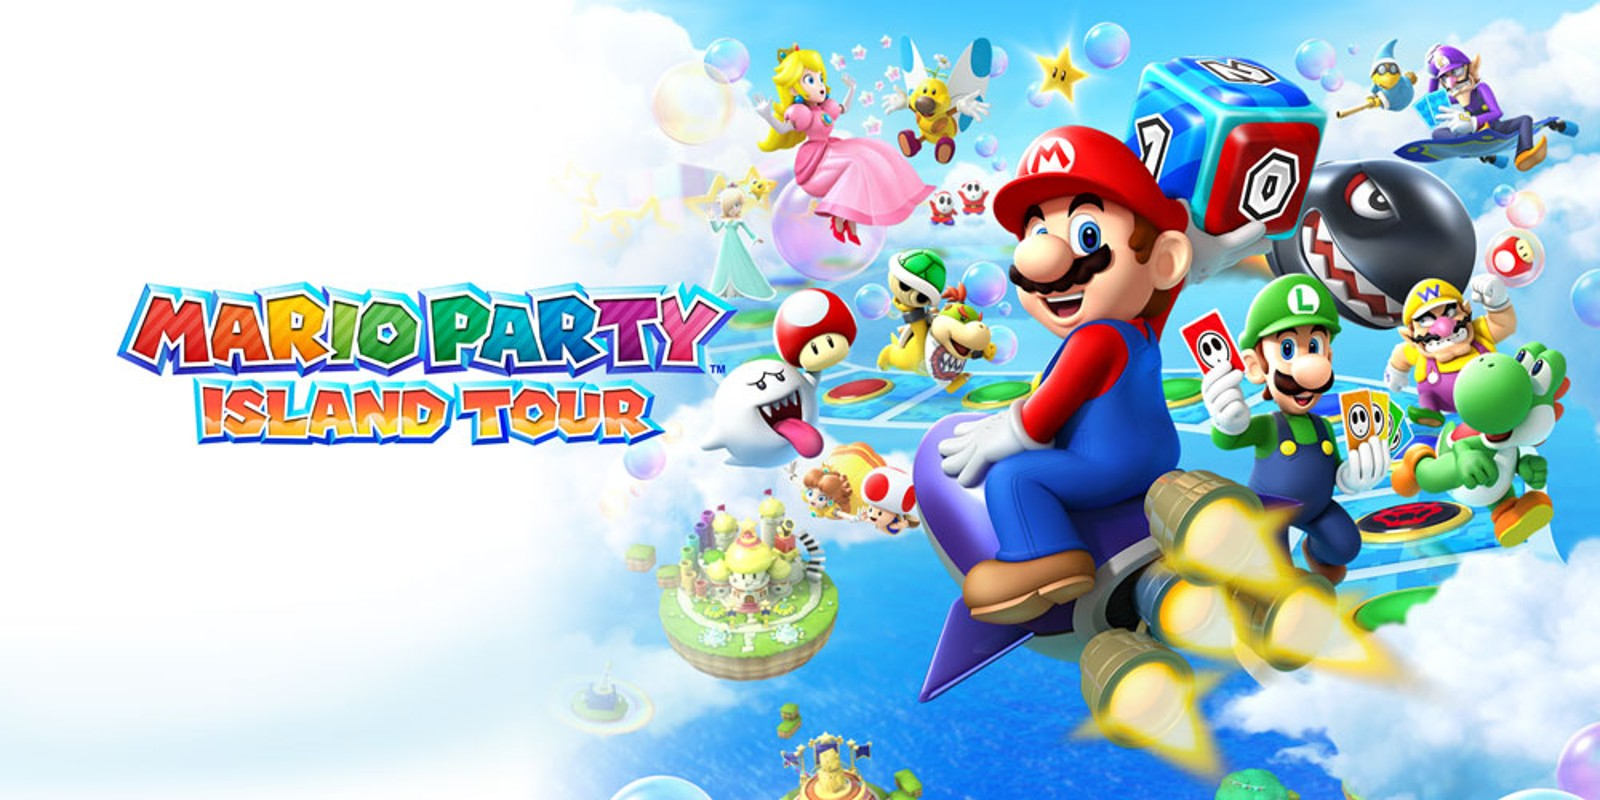 Mario party 8 pick the rules for dating